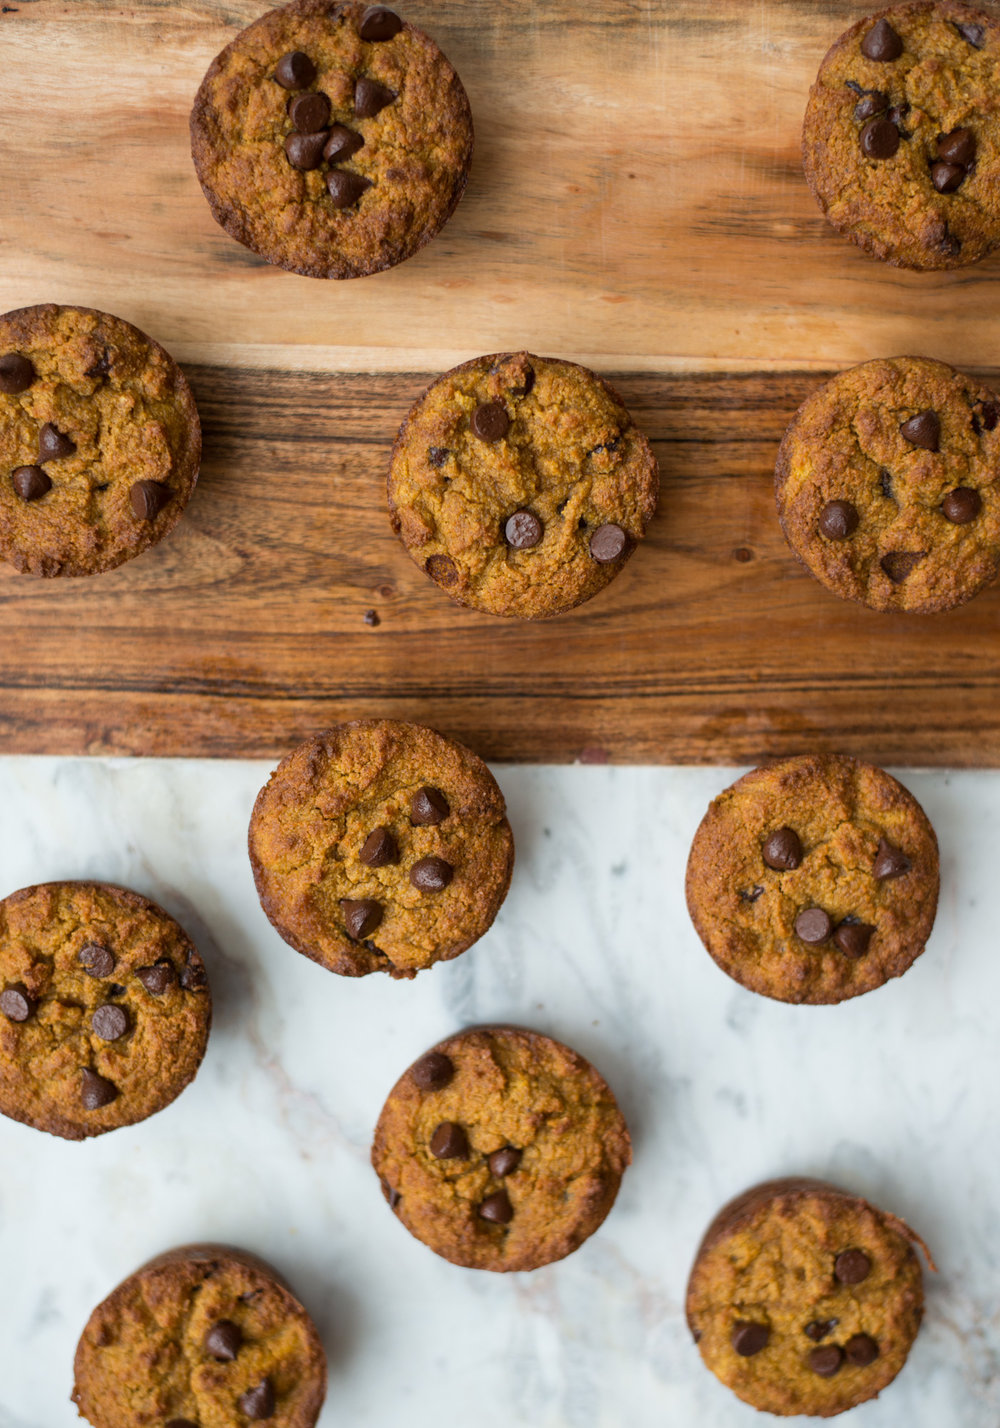 Enjoy the warming, cozy taste of the season with One-Bowl Pumpkin Chocolate Chip Muffins! Naturally grain-free, dairy-free, gluten-free and naturally-sweetened, these muffins are simple to make and taste amazing.